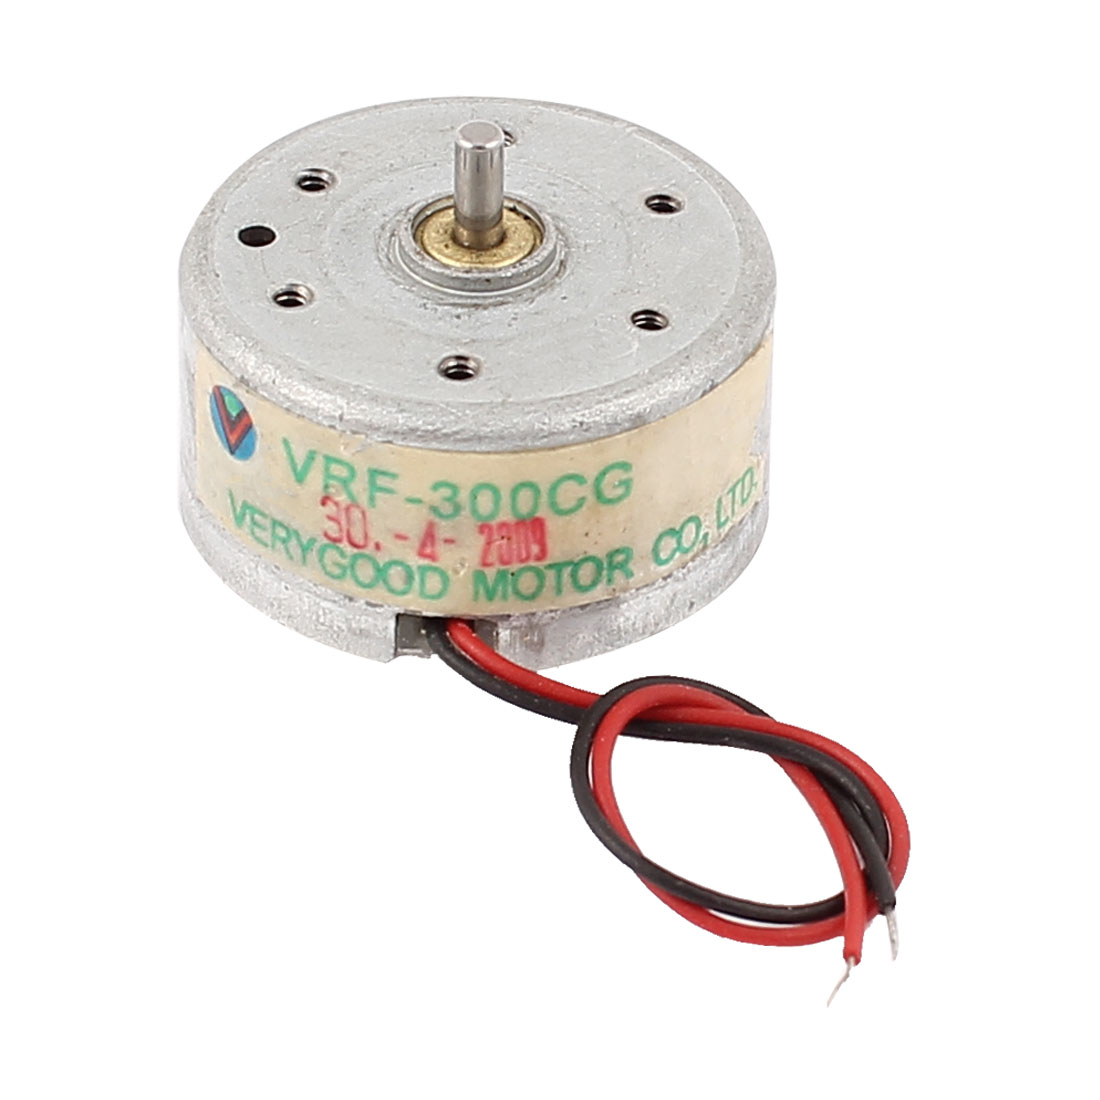 DC 2.4V 5100RPM Rotary Speed Micro Motor for DVD CVD Player